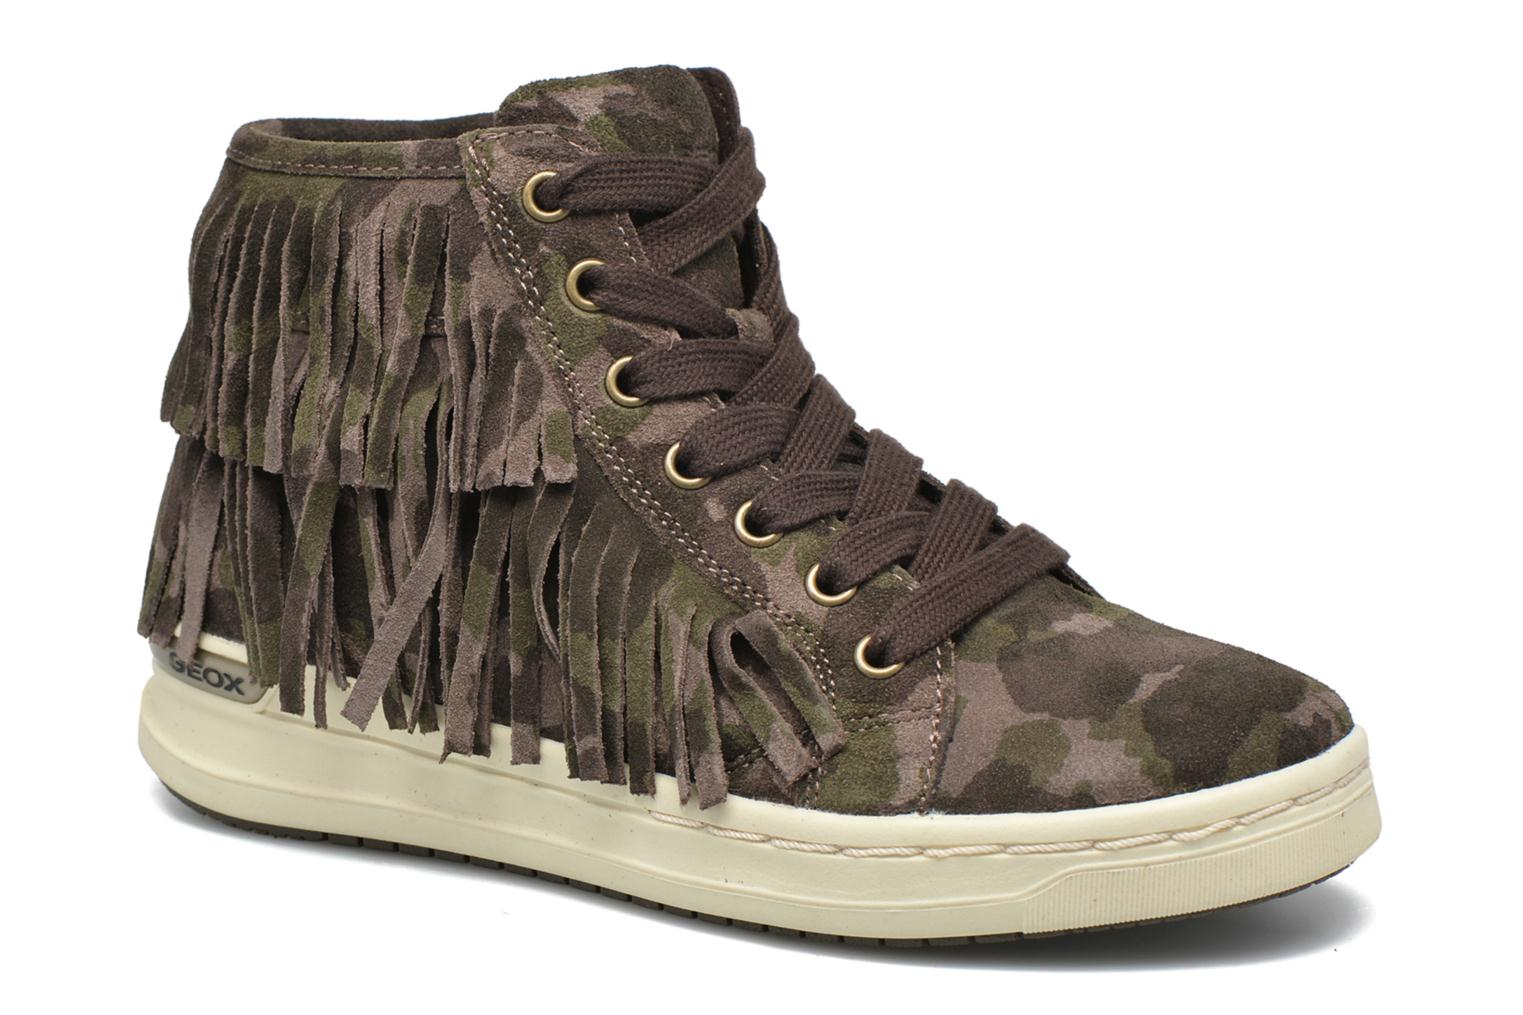 Sneakers J Aveup G. F J641ZF by Geox